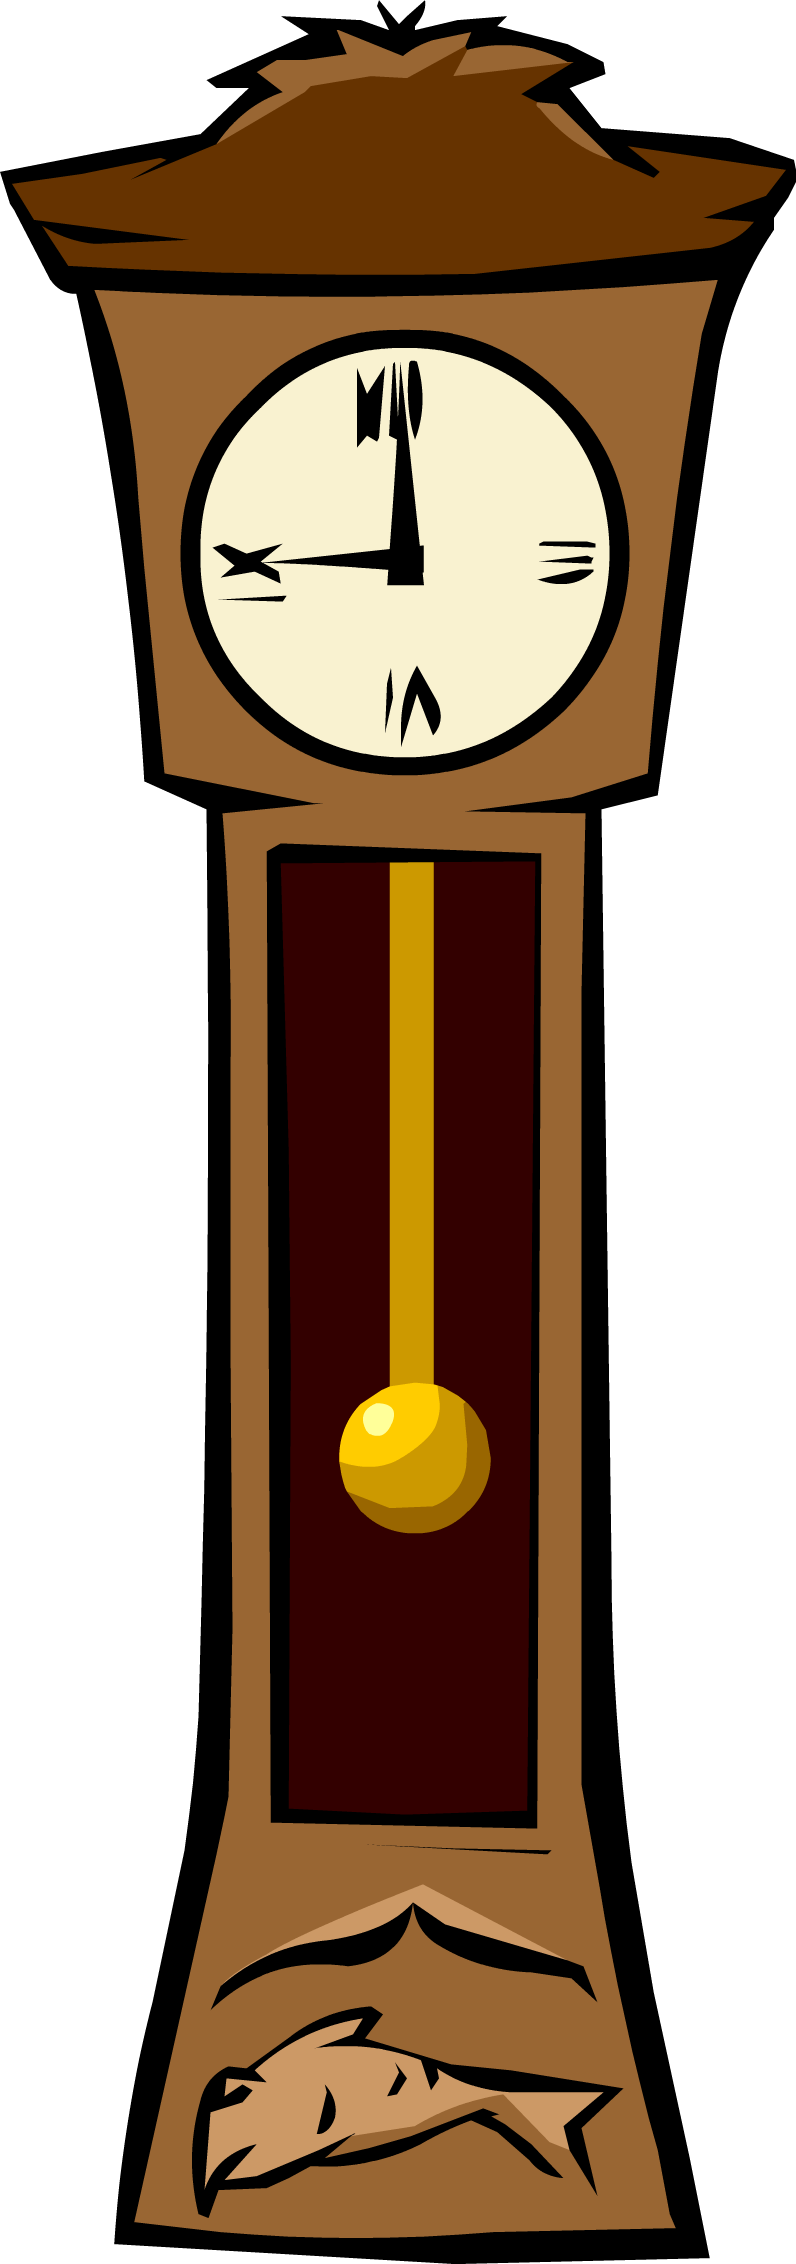 Grandfather yahoo search results. Clock clipart purple